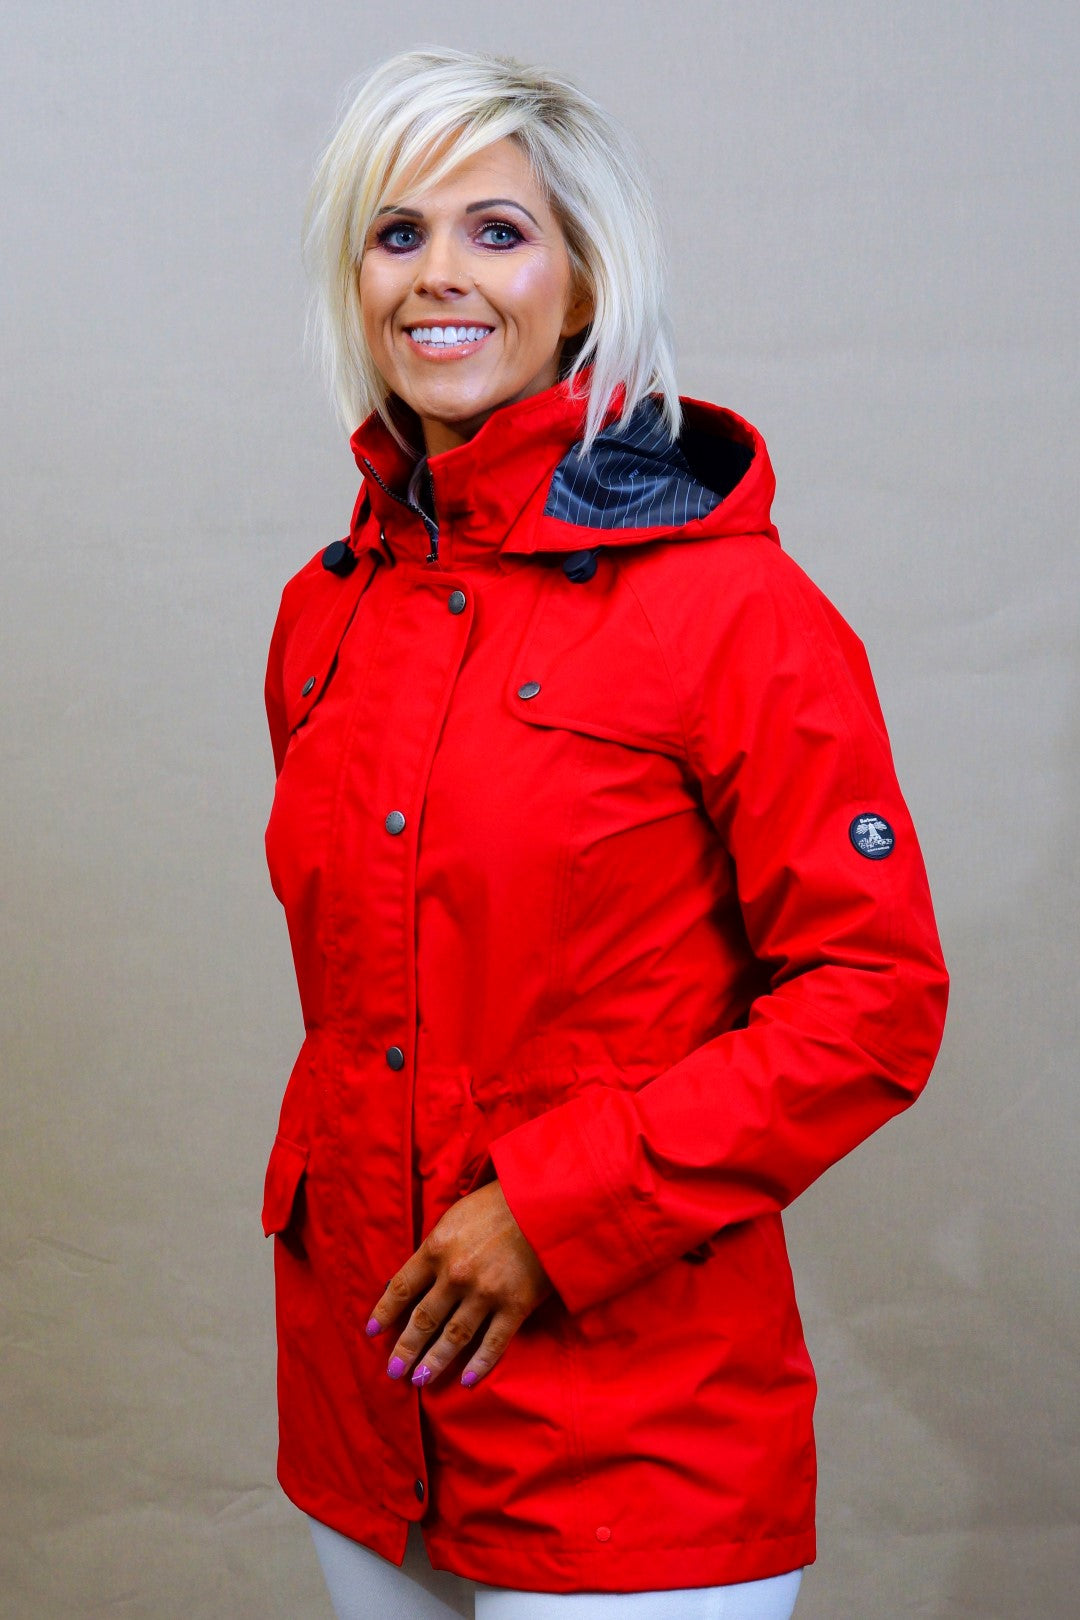 69d9ff148bcaa Barbour Trevose Jackets - Smyths Country Sports